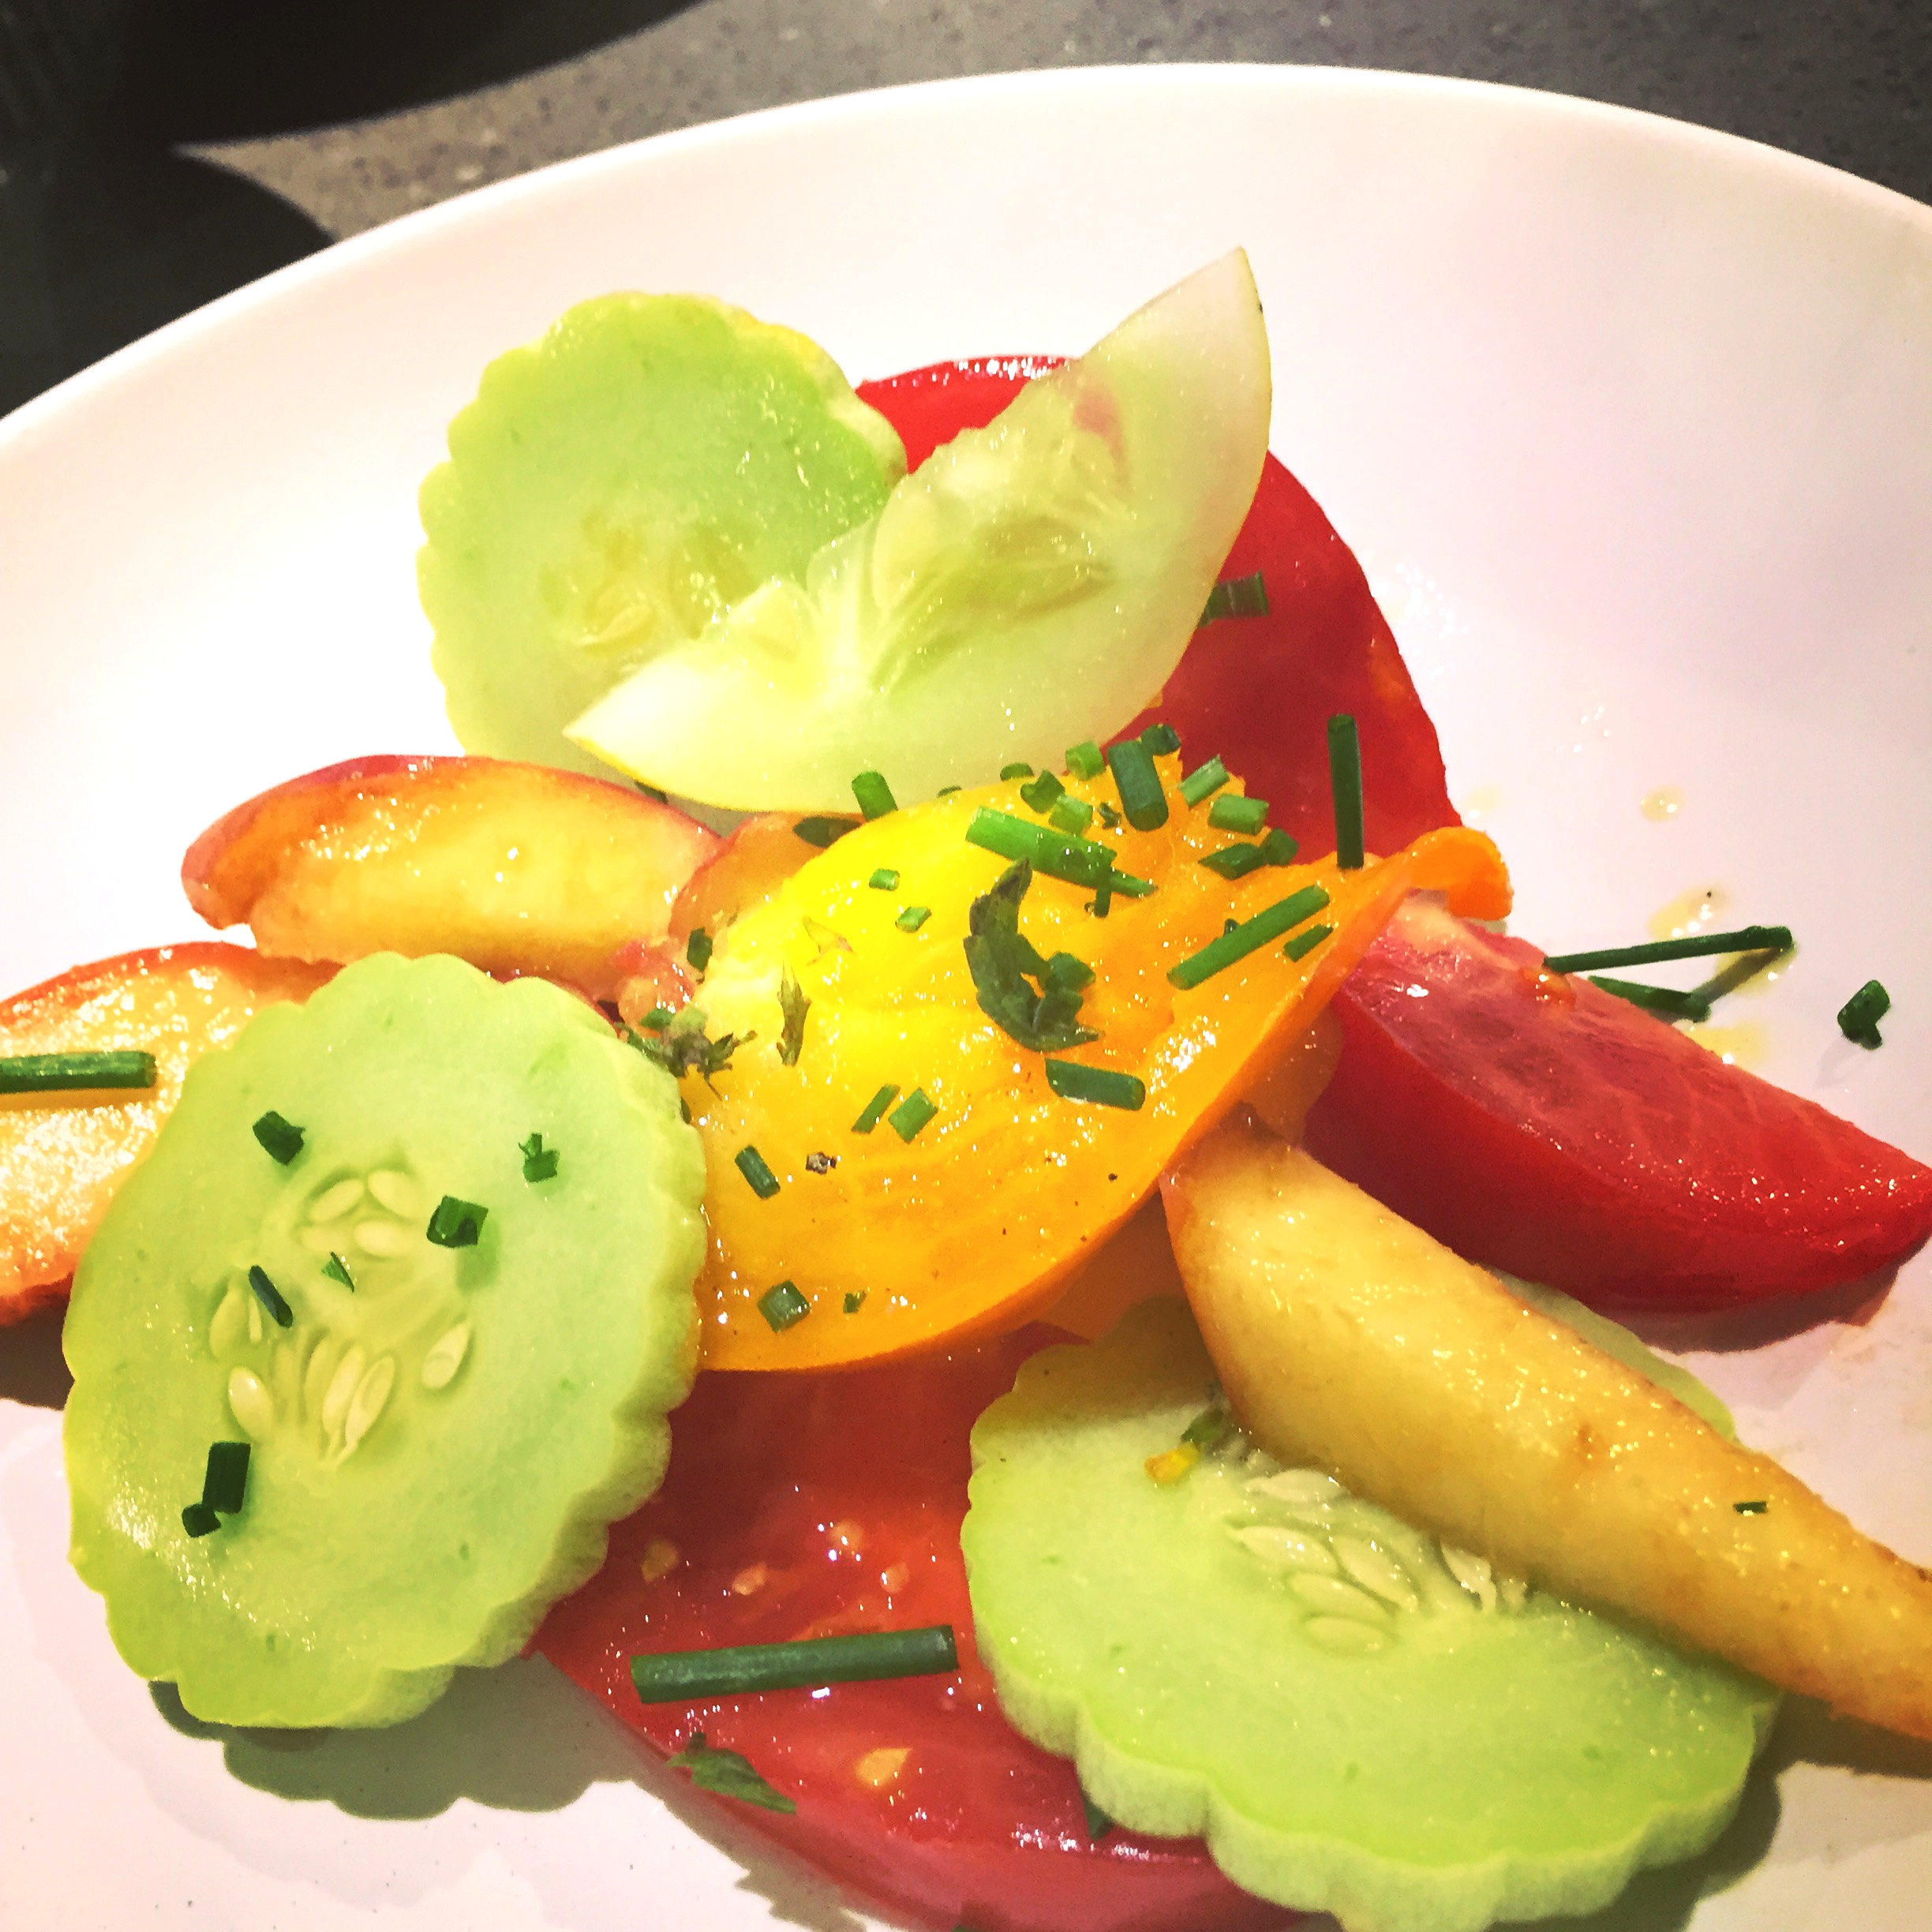 Cool as a cucumber salad with tomatoes & peaches garnished with chives